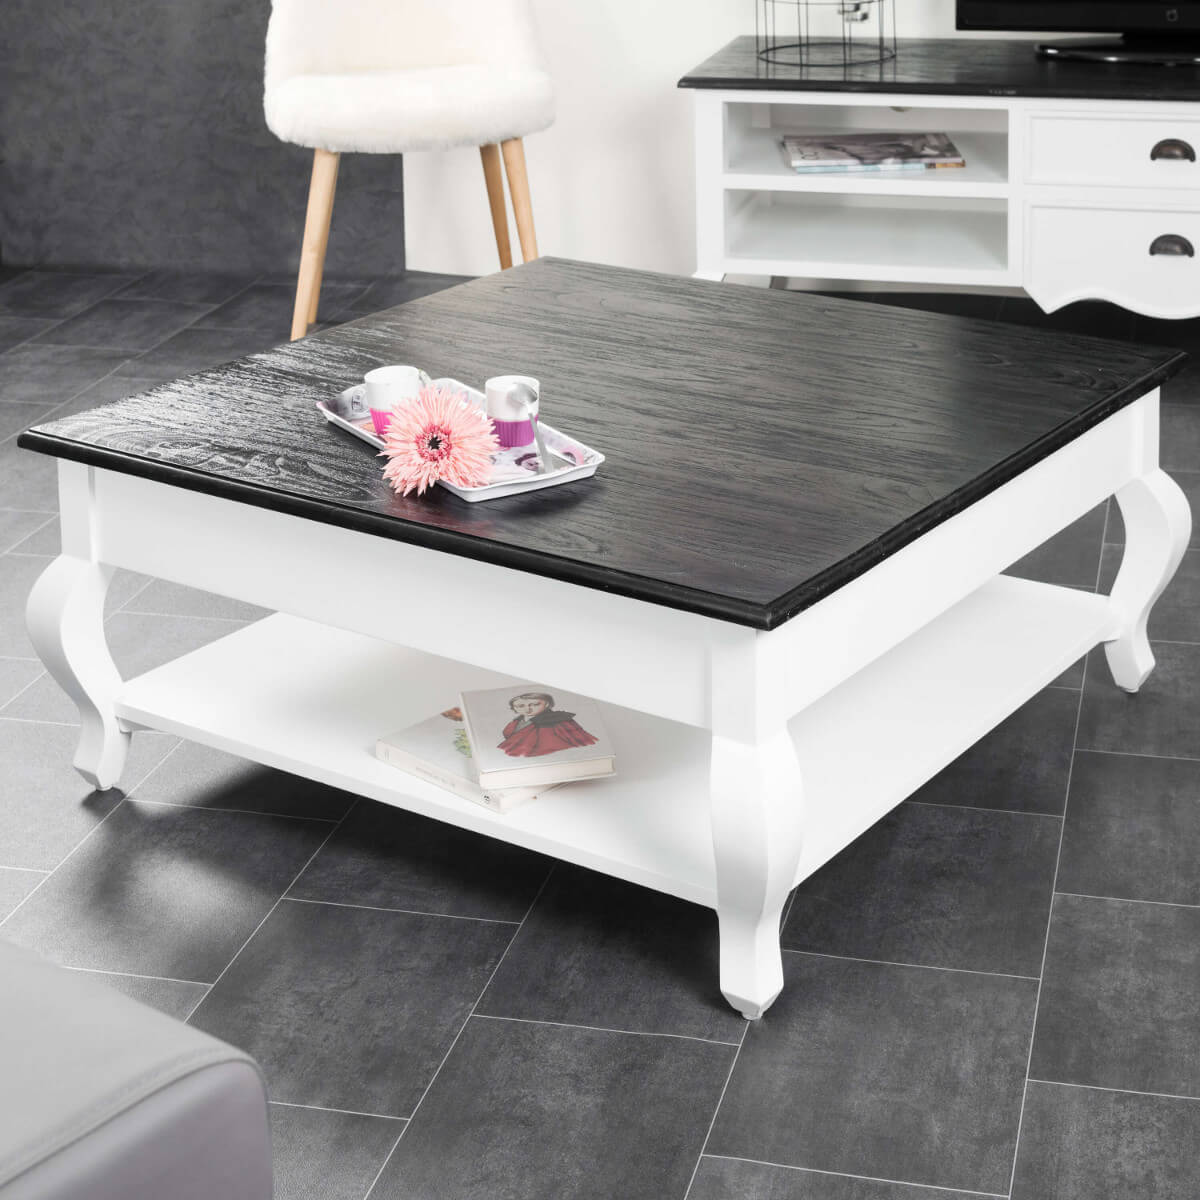 Table basse de salon en bois d 39 acajou et de pin massif idao carr e bl - Table basse de salon blanche ...